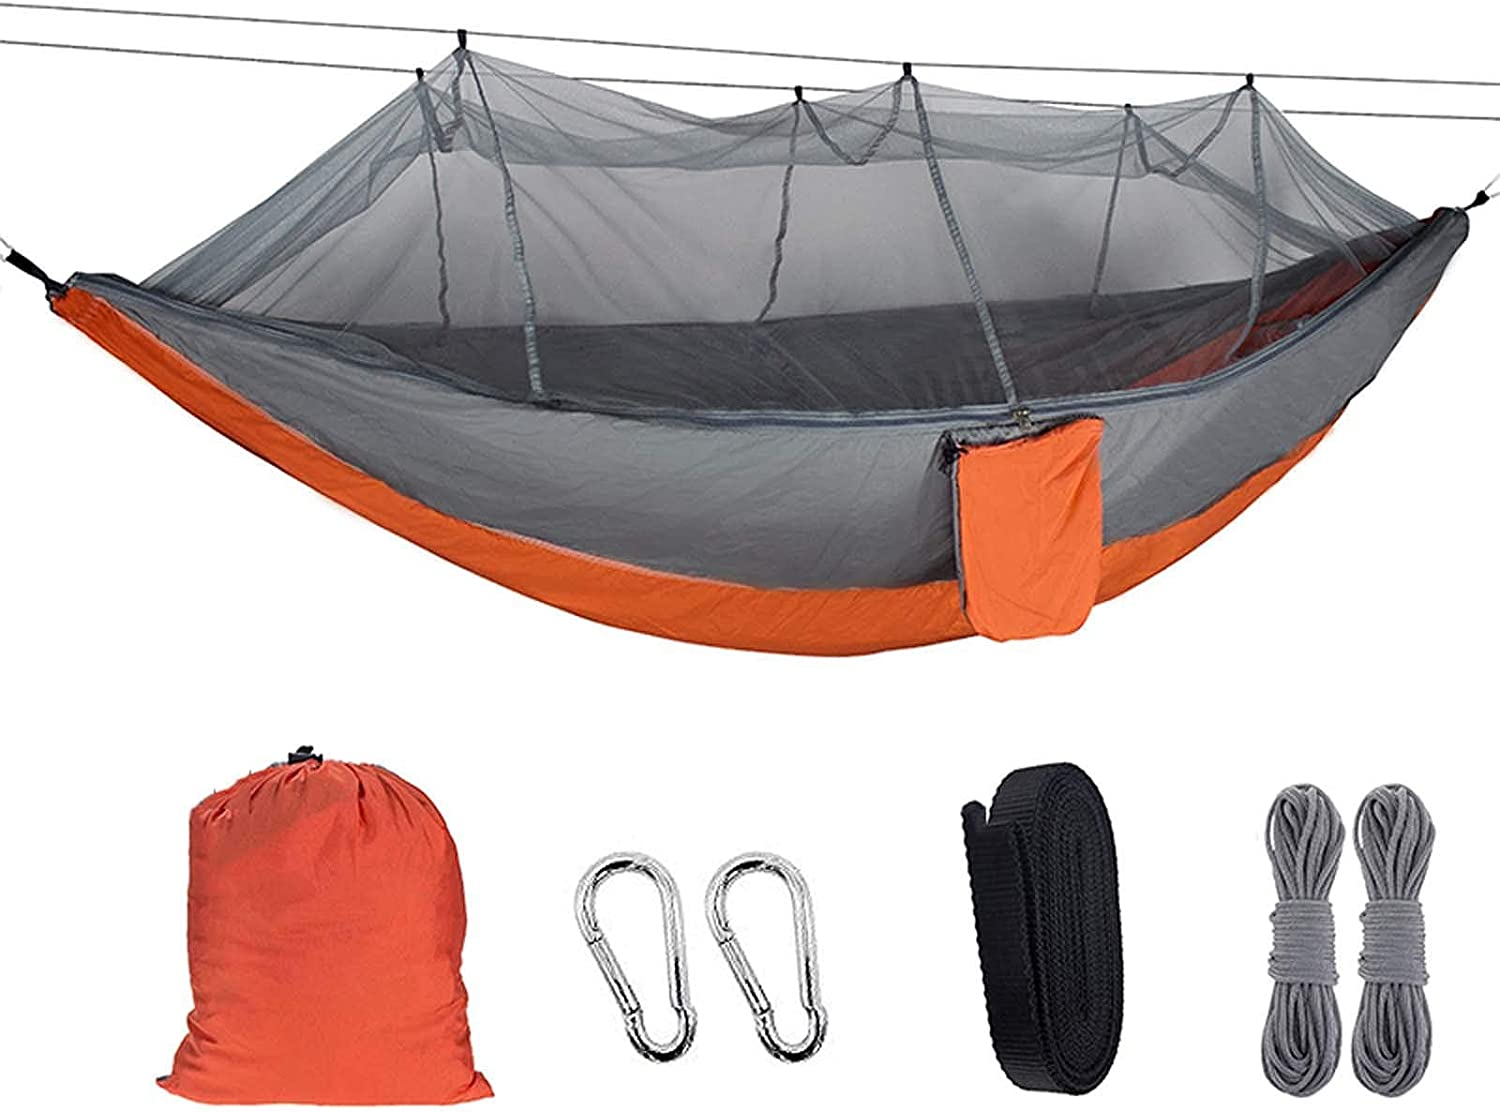 RVTYR Double Camping Hammock Max 86% OFF with Net Easy depot up As to Hold 440Lbs